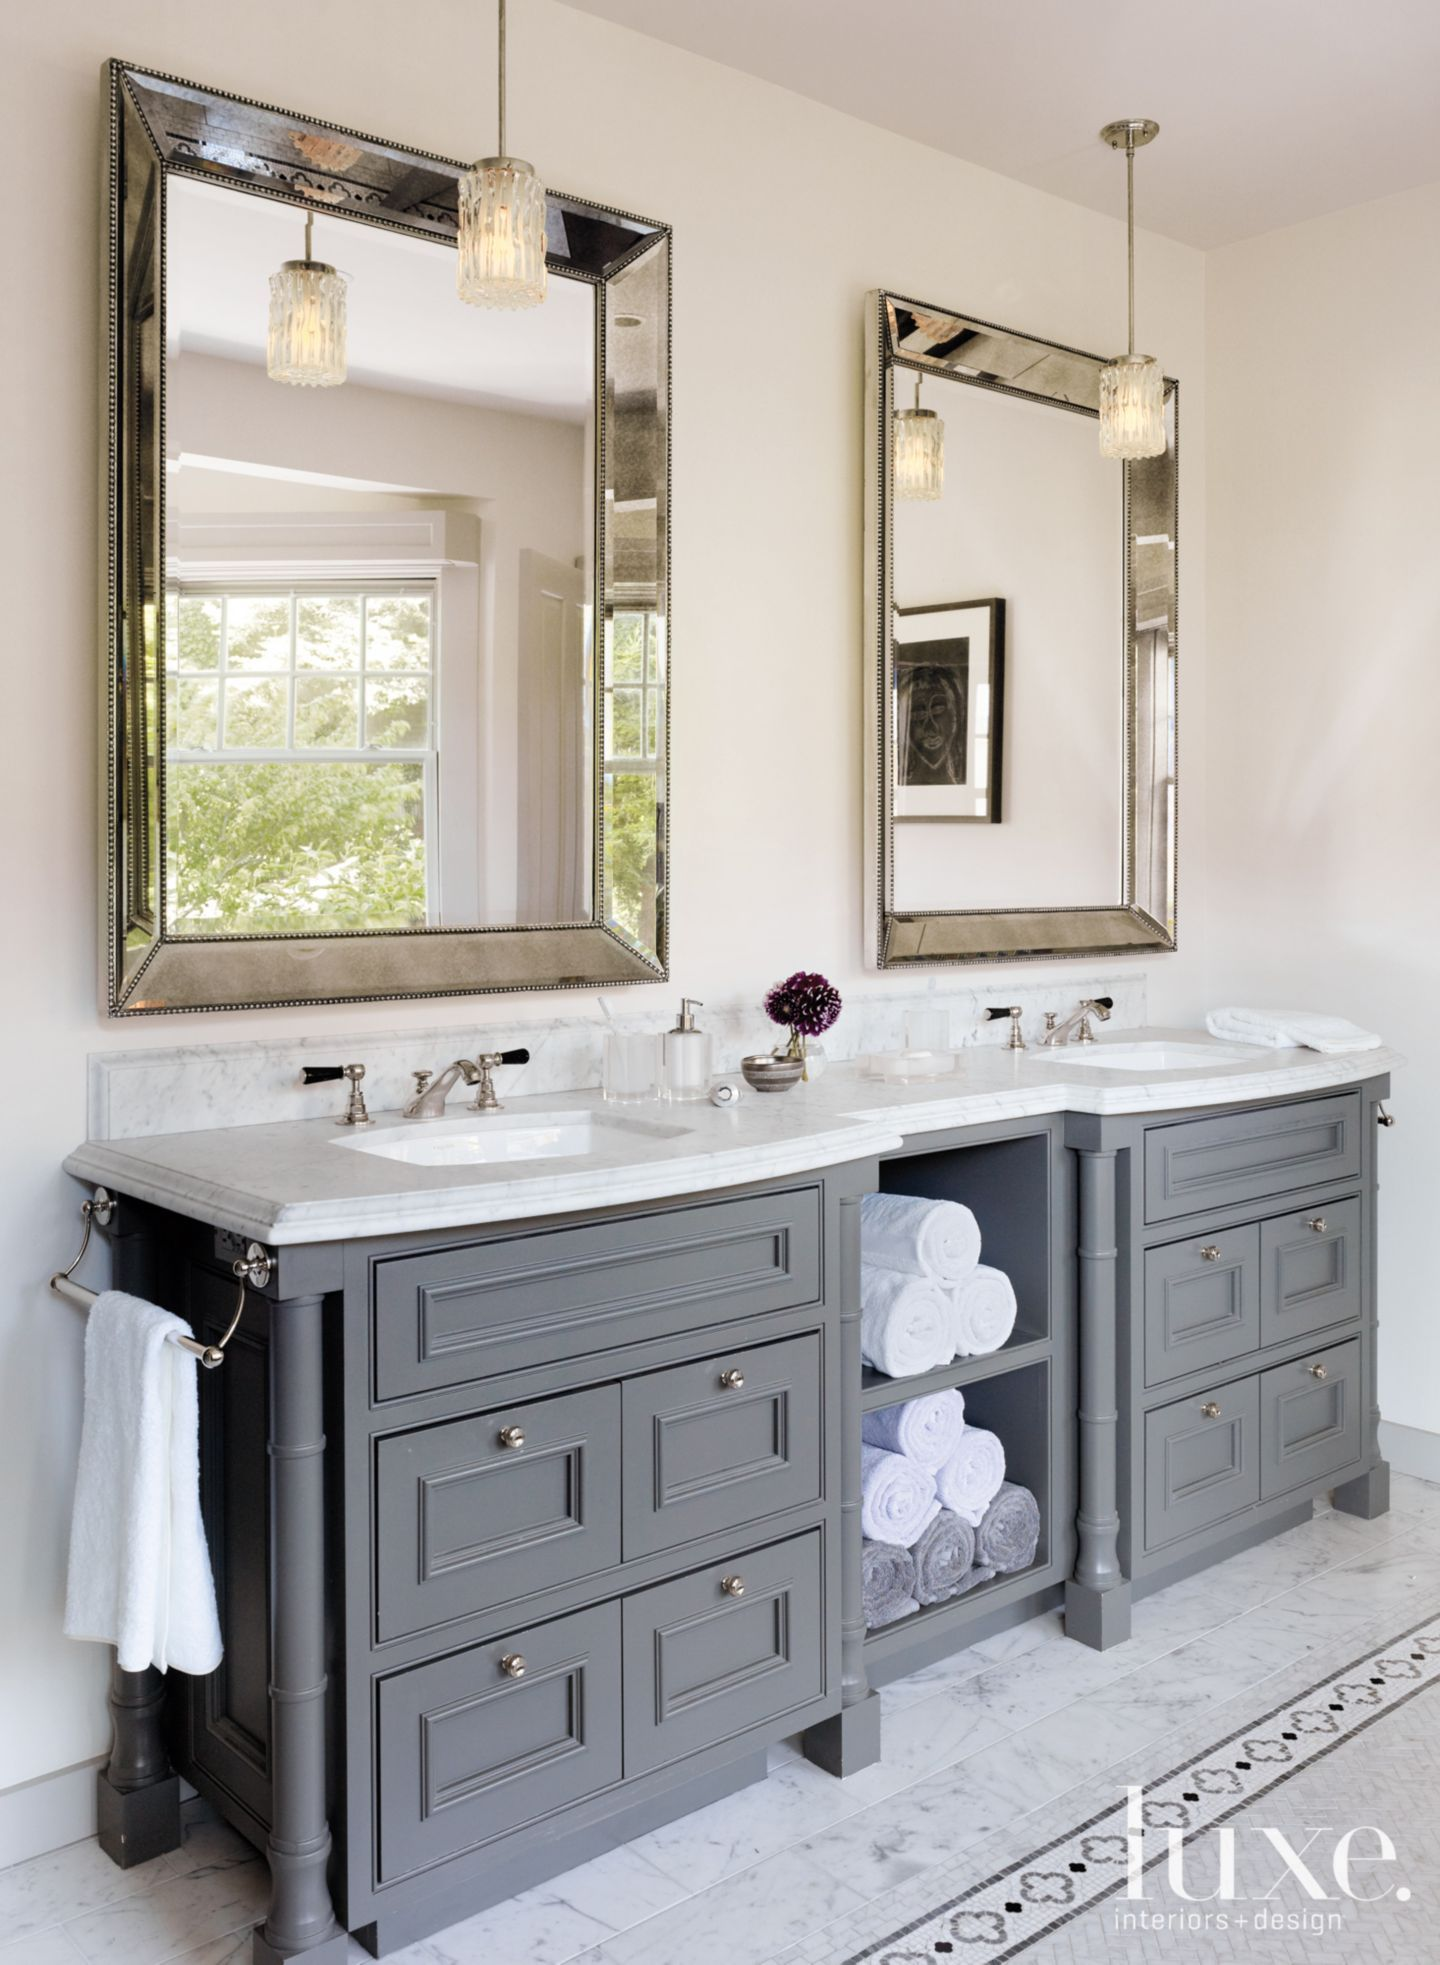 In the master bathroom rosenfeld hung a pair of for Custom bathroom vanity designs